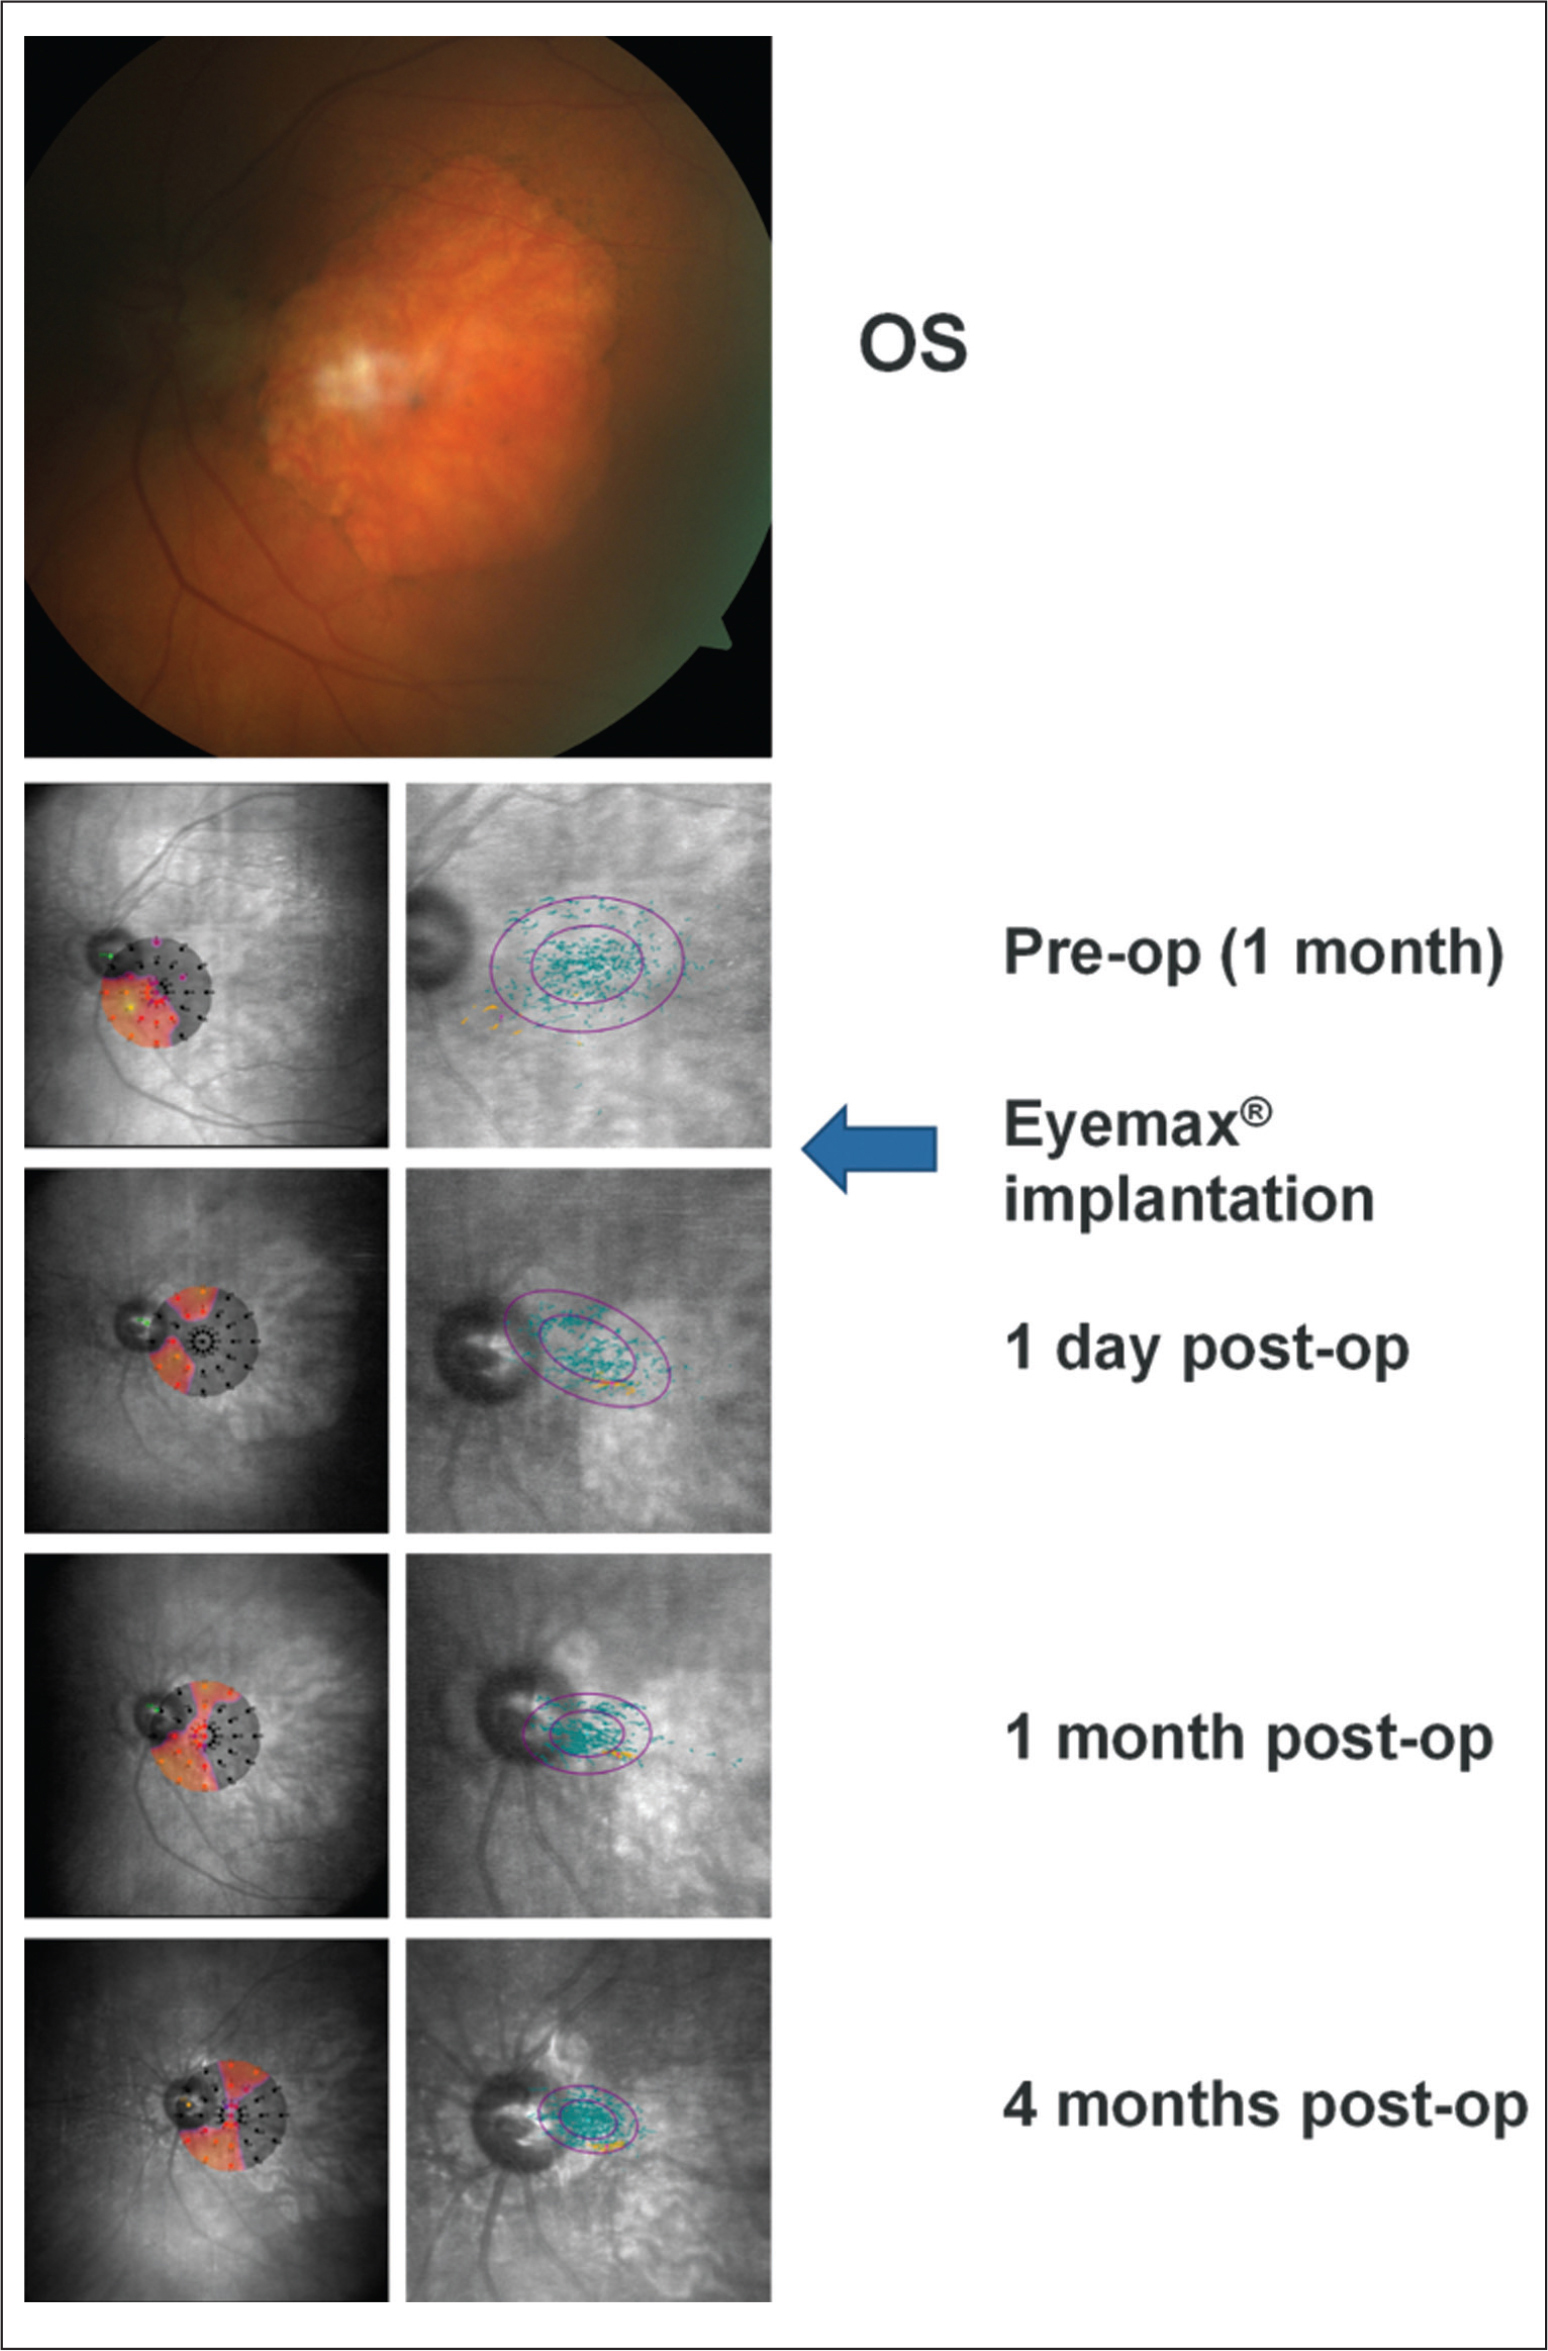 Preoperative color fundus photograph and microperimetric images obtained at baseline and 1 day, 1 month, and 4 months after implantation of the Eyemax mono intraocular lens (IOL) (LEH Pharma, London, United Kingdom) (eye 8). Color fundus photograph of the left eye in an 86-year-old woman (top panel; right eye is shown in Figure FA) confirming a large area of geographic atrophy and minimal cataract. Left panels show interpolated sensitivity maps demonstrating the sensitivity at each point of the retina using information from nearby stimuli at baseline and post-implantantion. Right panels show fixation points (blue dots; orange fixation dots represent points used in the first 10 seconds of the test) with bivariate contour ellipse area analysis; the smaller ellipse contains 63% of all fixation points and the larger ellipse contains 95% of all fixation points. Threshold sensitivity at baseline is close to zero, with only a few stimuli seen in an area inferotemporal to the disc, and fixation points are spread over a wide area centered within the area of geographic atrophy. Threshold sensitivities remained largely unchanged postoperatively but fixation shifted so that the preferred retinal locus exploited a narrow corridor of functioning photoreceptors between the optic disc and the area of geographic atrophy. These changes were associated with a progressively more tightly focused cluster of fixation points centered outside of the area of geographic atrophy (mean percentage of fixation points within a 4° circle increased from 57% at baseline to 93% at 4 months postoperatively).